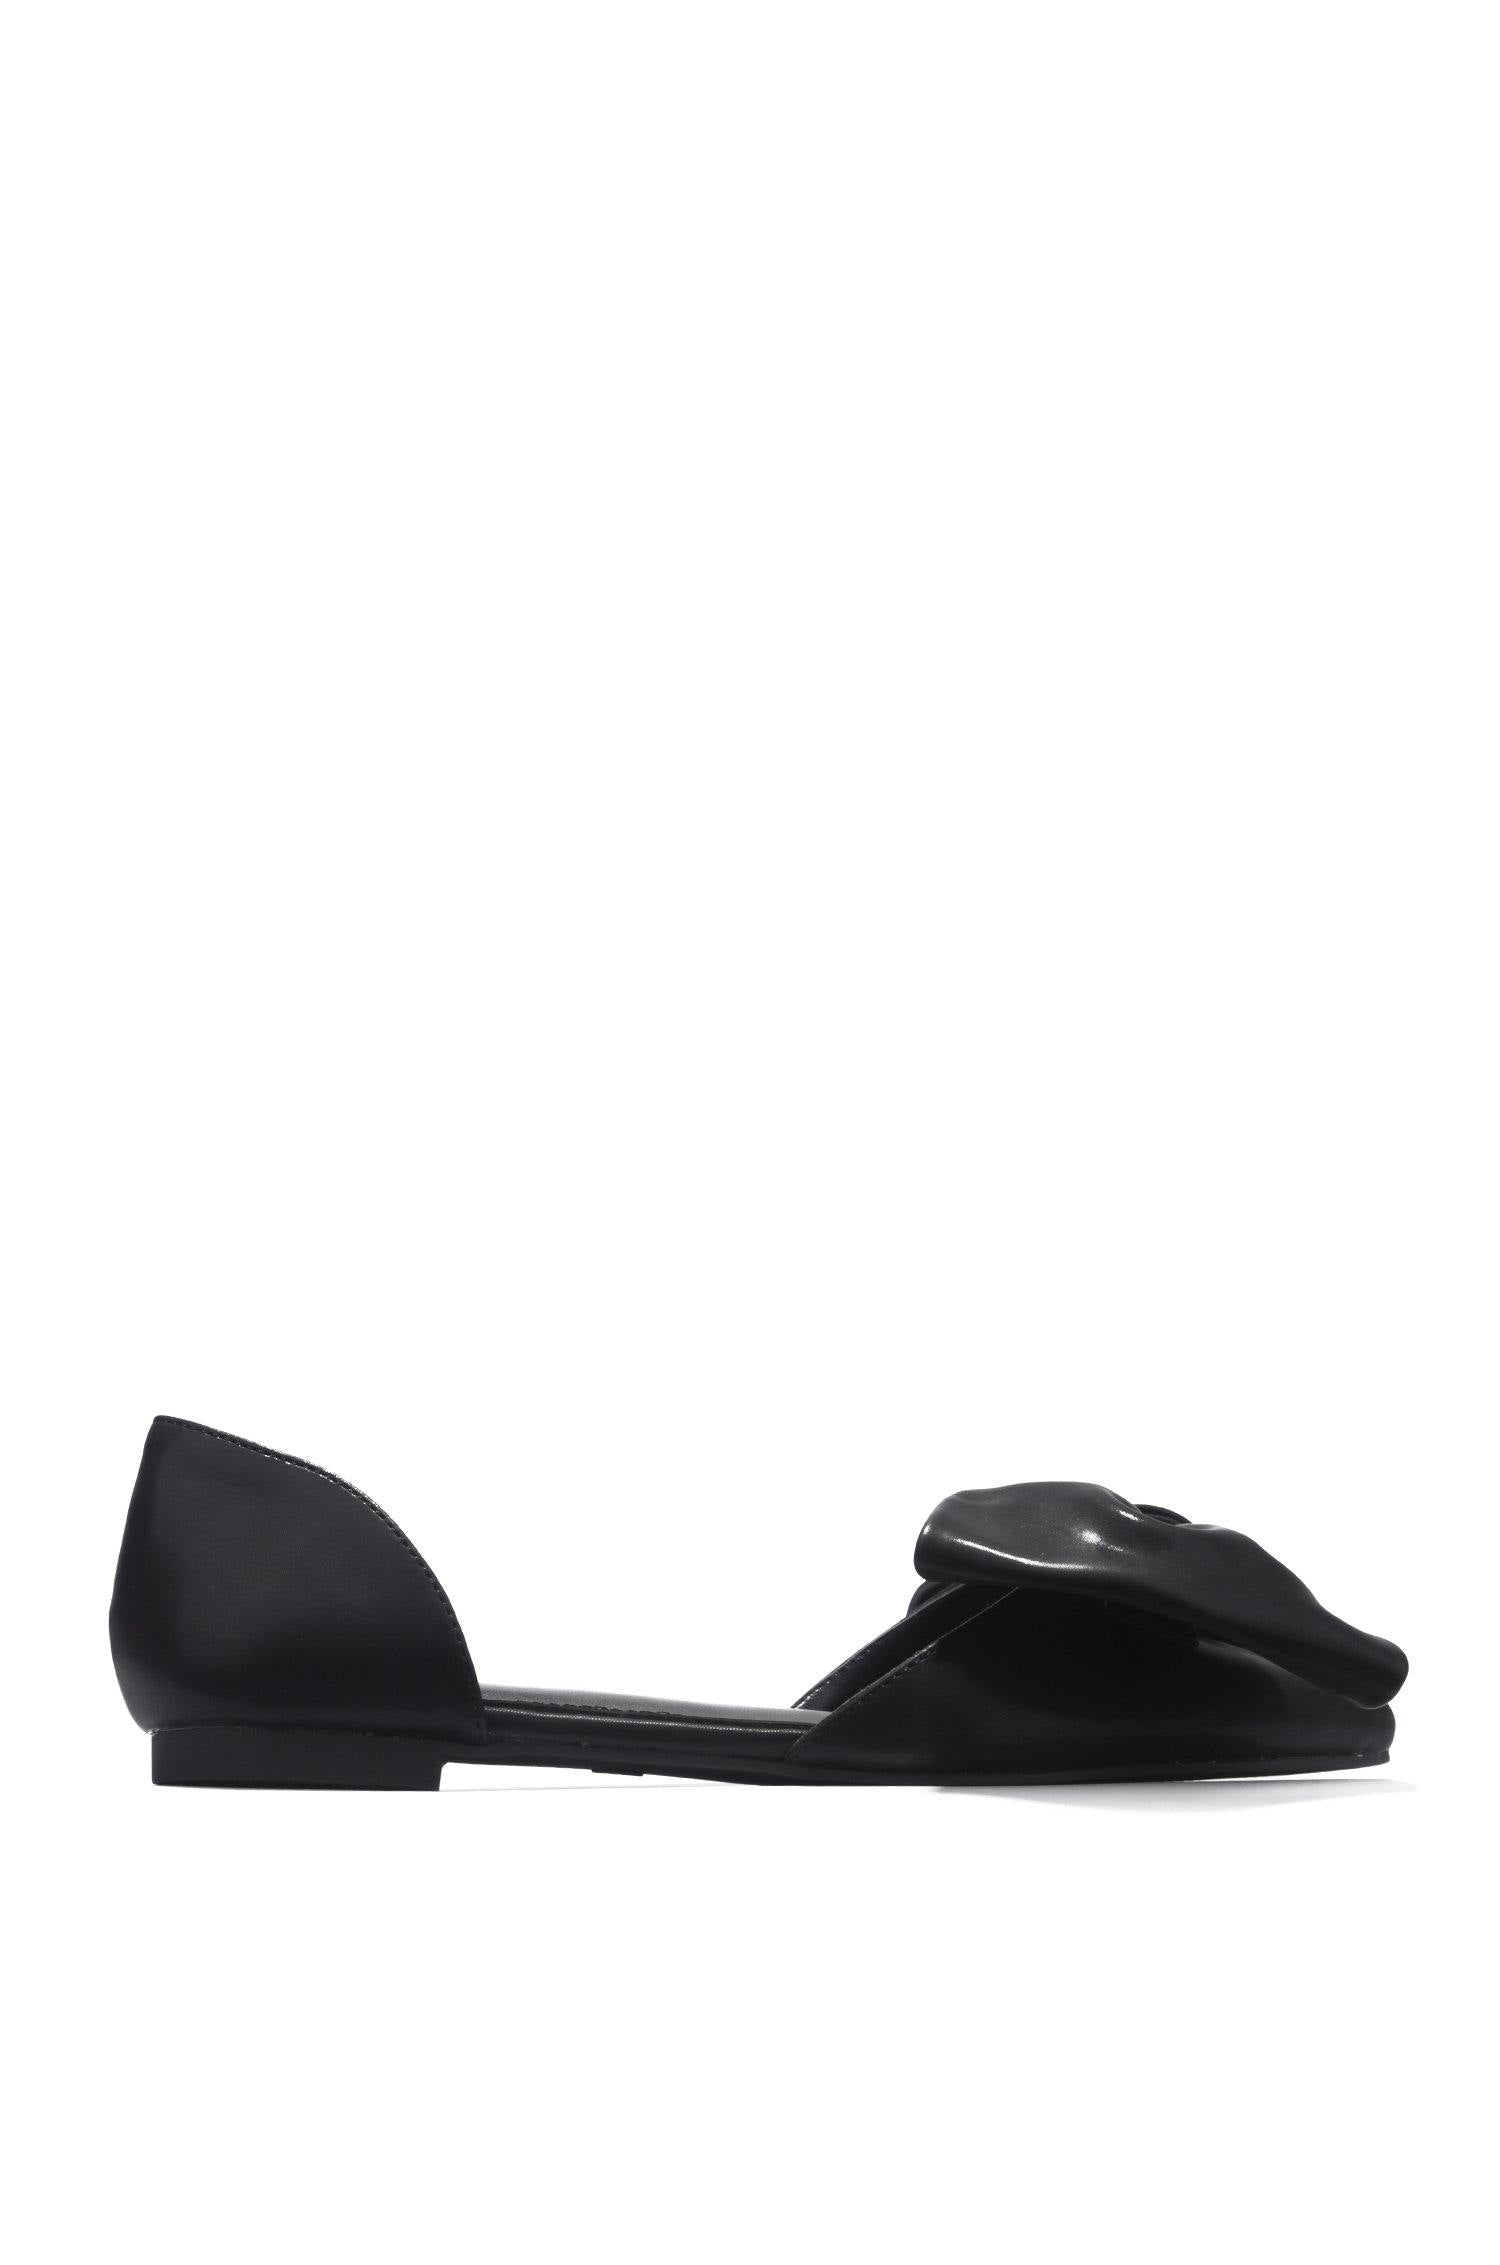 TWIT NOT YOUR EVERYDAY FLATS-BLACK